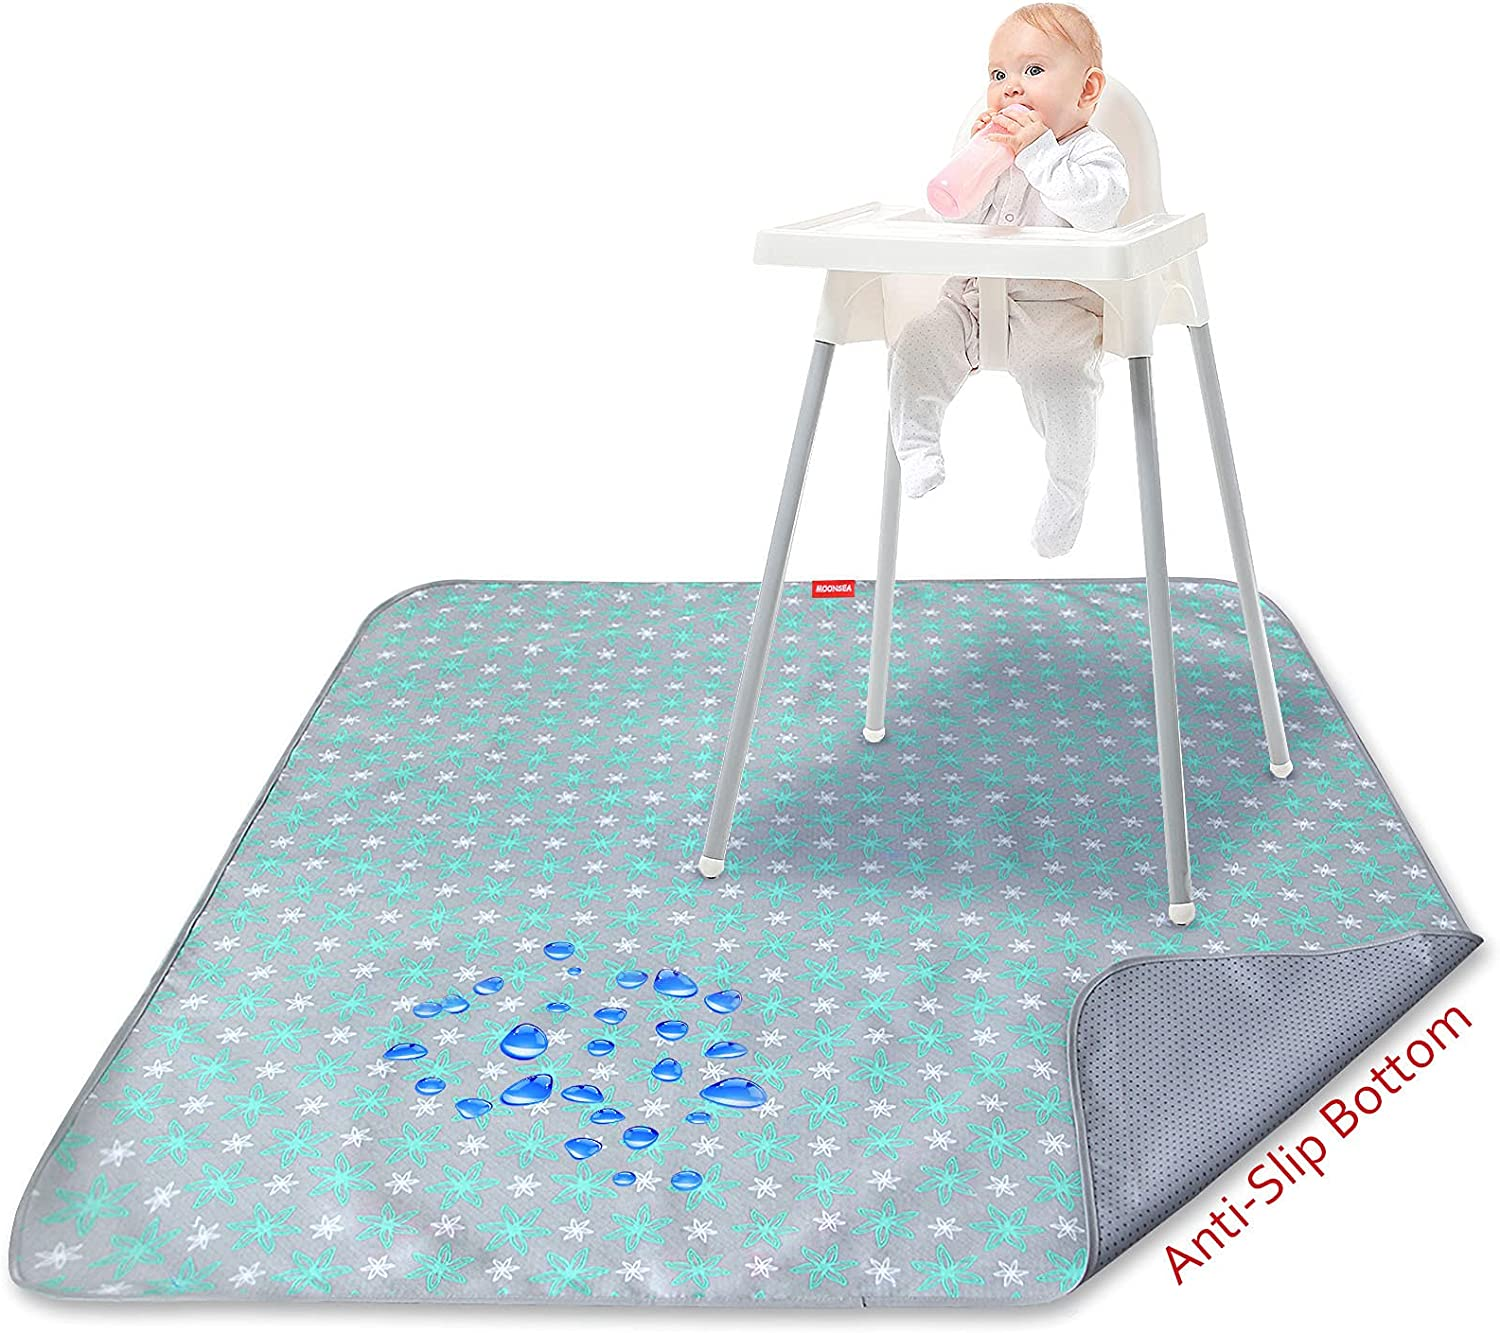 Splat Mat High Chair Mat for Mealtime, Anti Slip and Waterproof Splash Mat, Baby Playtime Splat Mat for Art and Crafts, Machine Washable Portable Picnic Mat and Baby Feeding Table Cloth